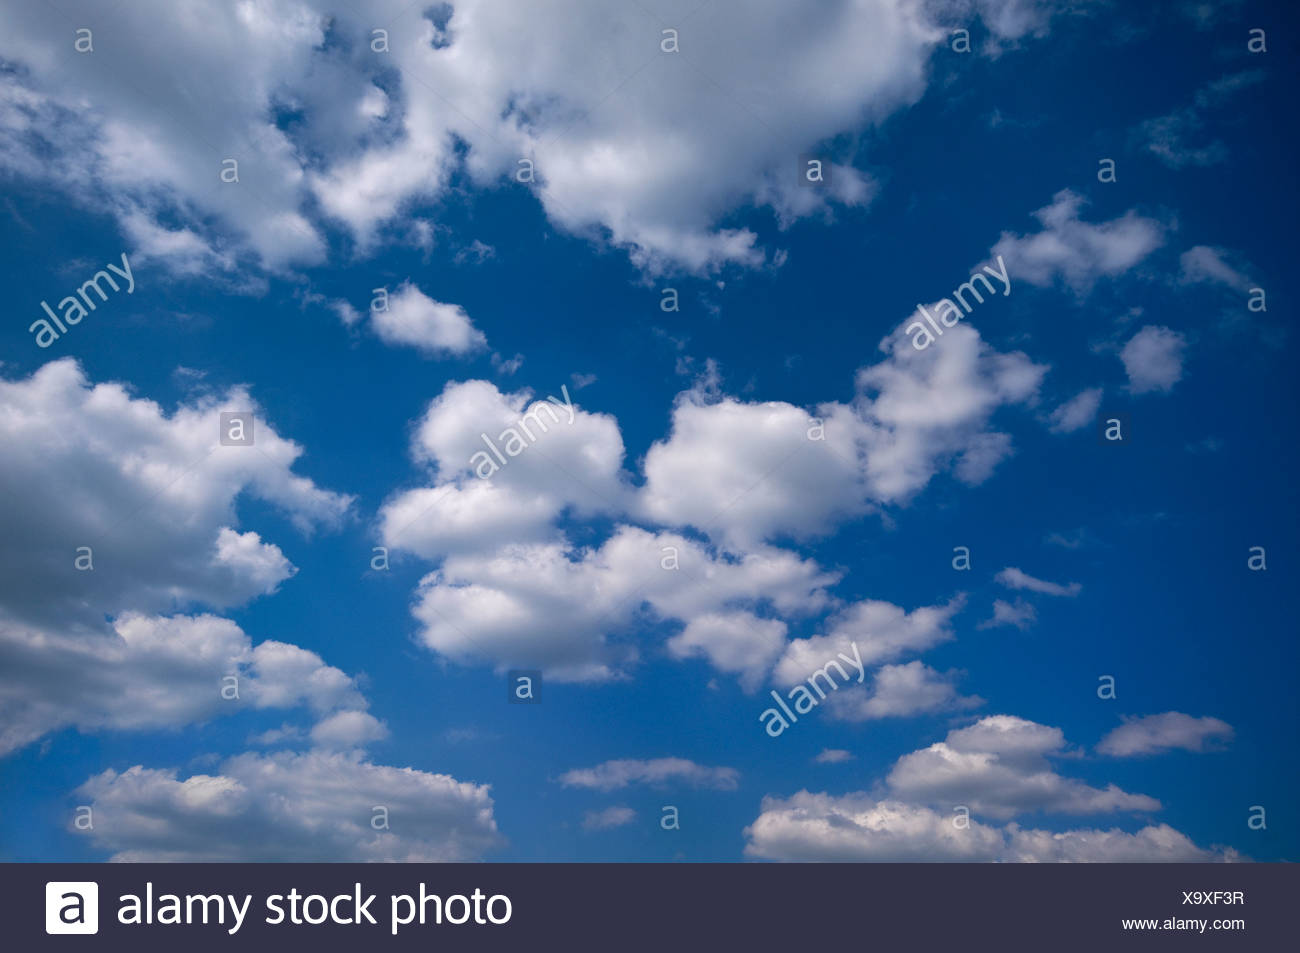 Many cumulus clouds in a blue sky - Stock Image